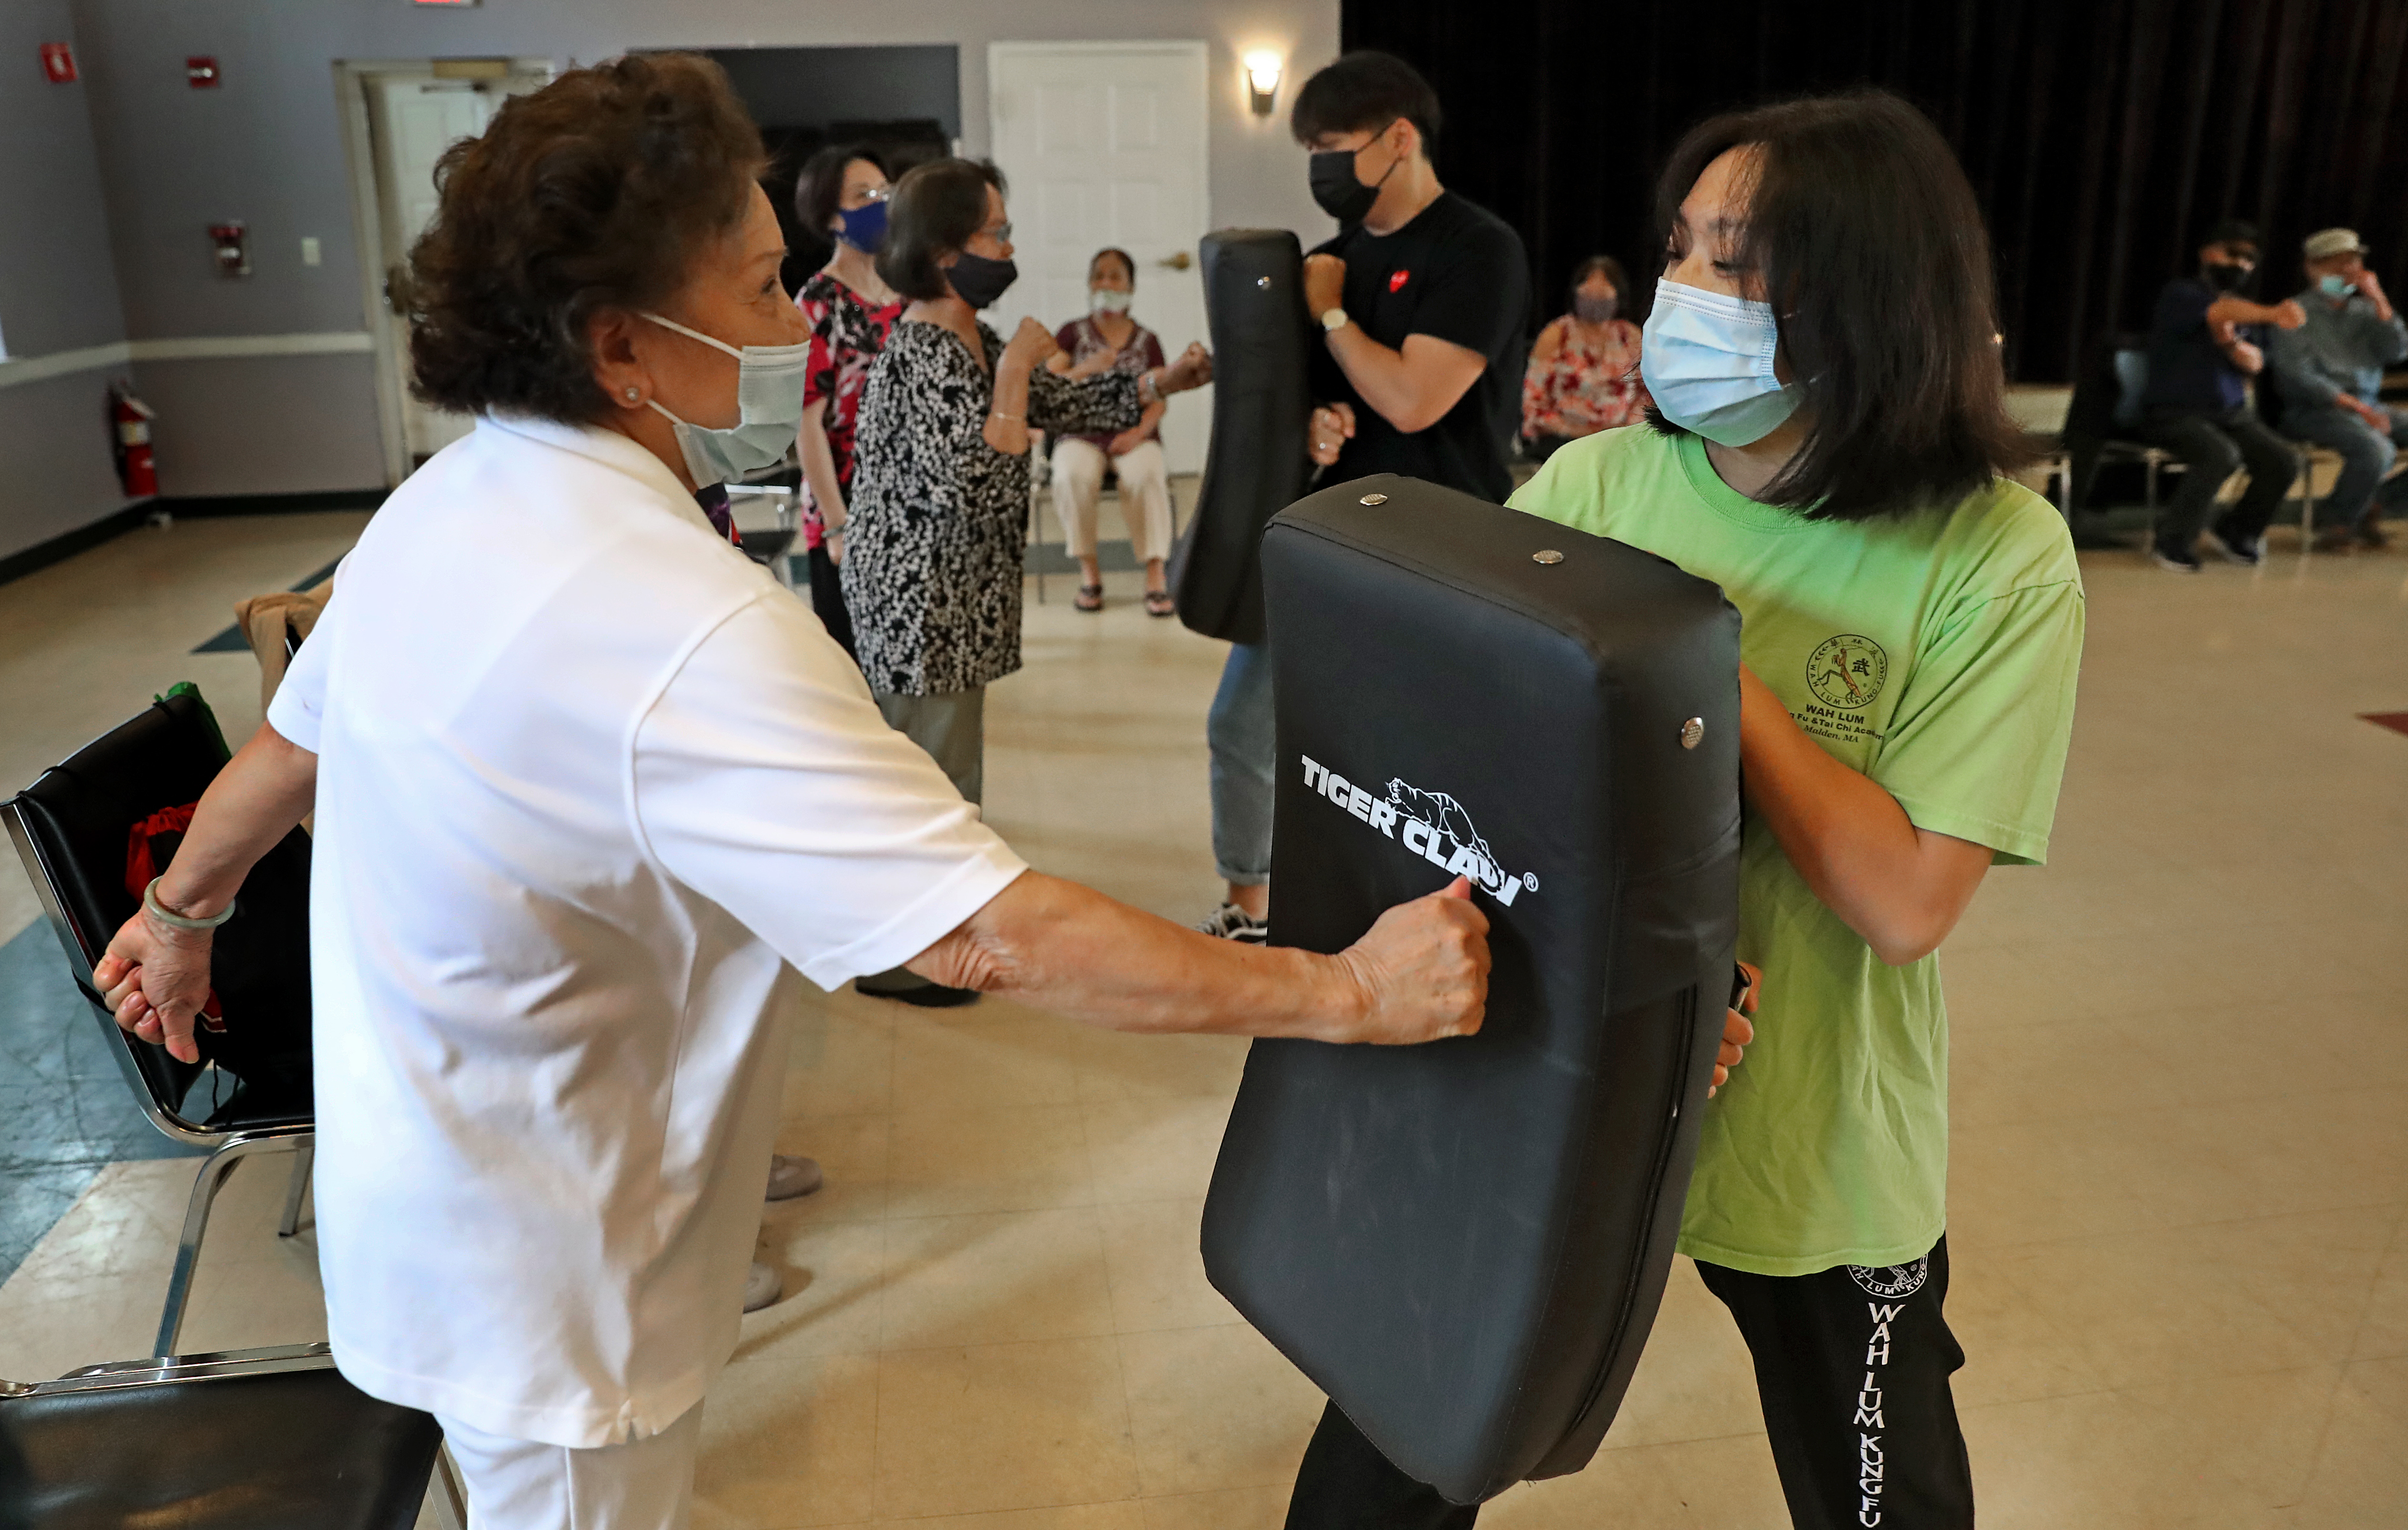 Linh Mat, 88, threw a punch during a demonstration on how to hit an attacker at VietAID's community center in Fields Corner, as instructor Mai Du (right) held the pad. Du is teaching seniors self-defense in response to a rash of assaults on older Asian Americans in many cities.